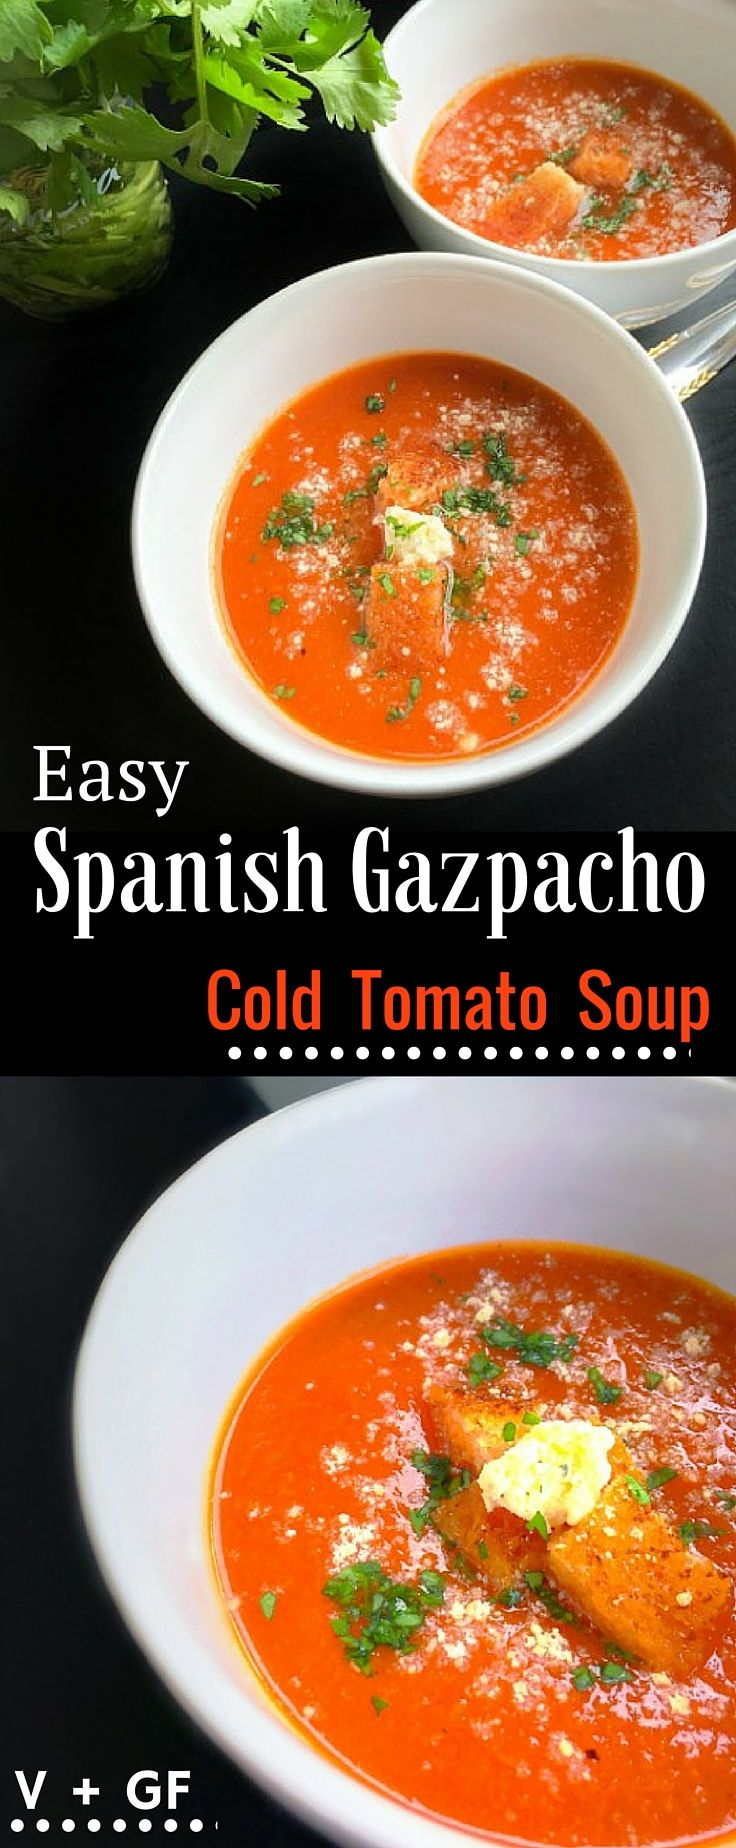 Easy Spanish Gazpacho - Cold Tomato Soup